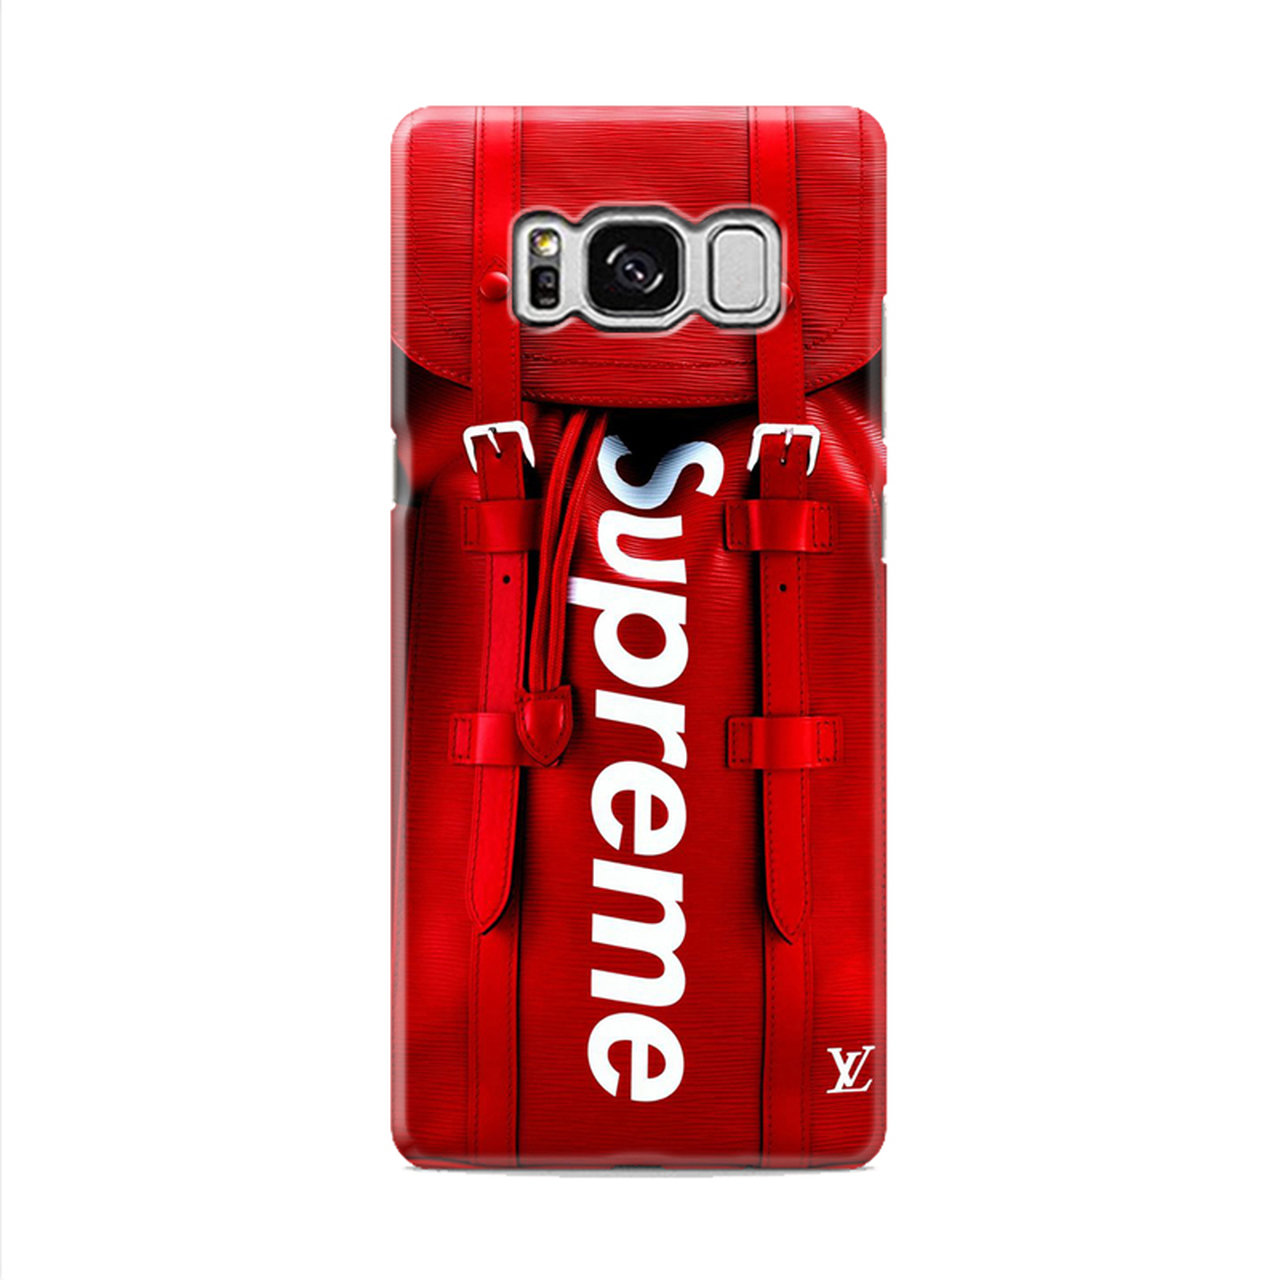 Free Download Red Bag Supreme Wallpaper Samsung Galaxy S8 3d Case Myarbey 1280x1280 For Your Desktop Mobile Tablet Explore 44 Samsung S8 Wallpaper Red Samsung S8 Wallpaper Red Samsung